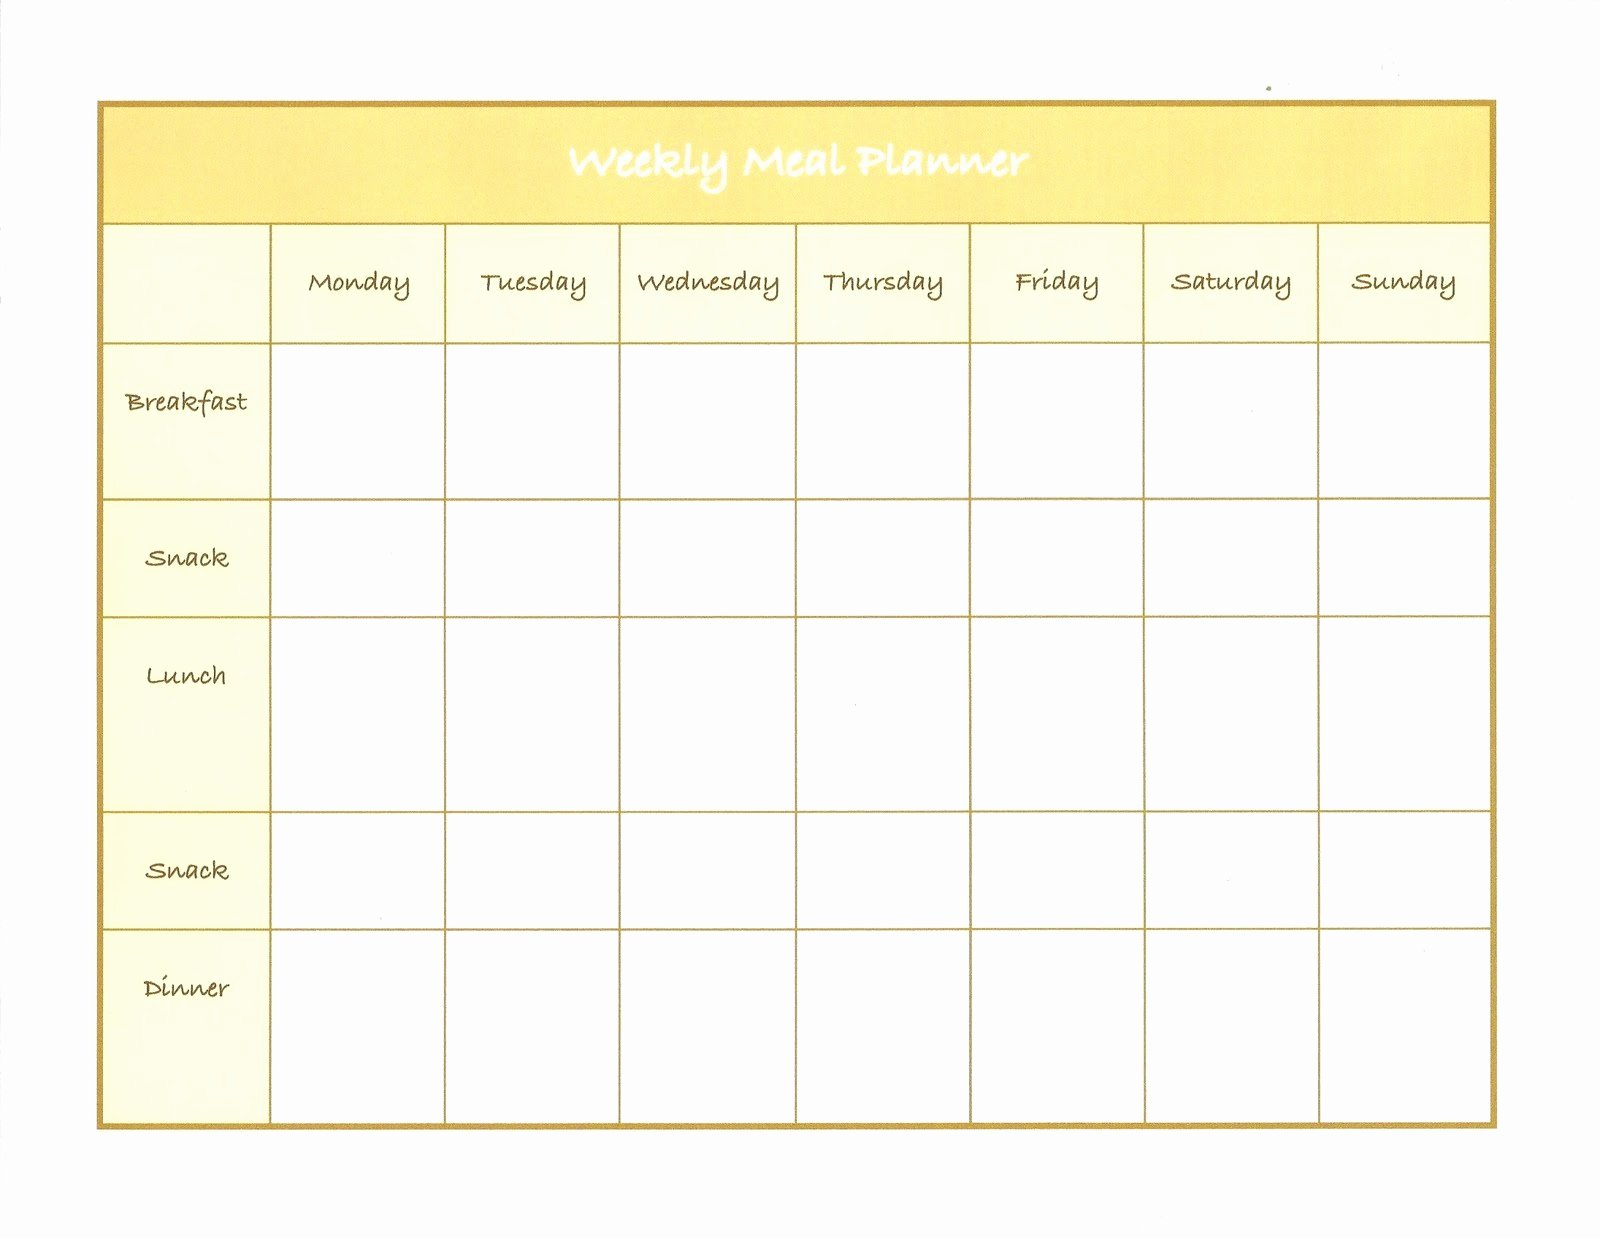 Free Meal Planner Template Awesome Meal Planner Template